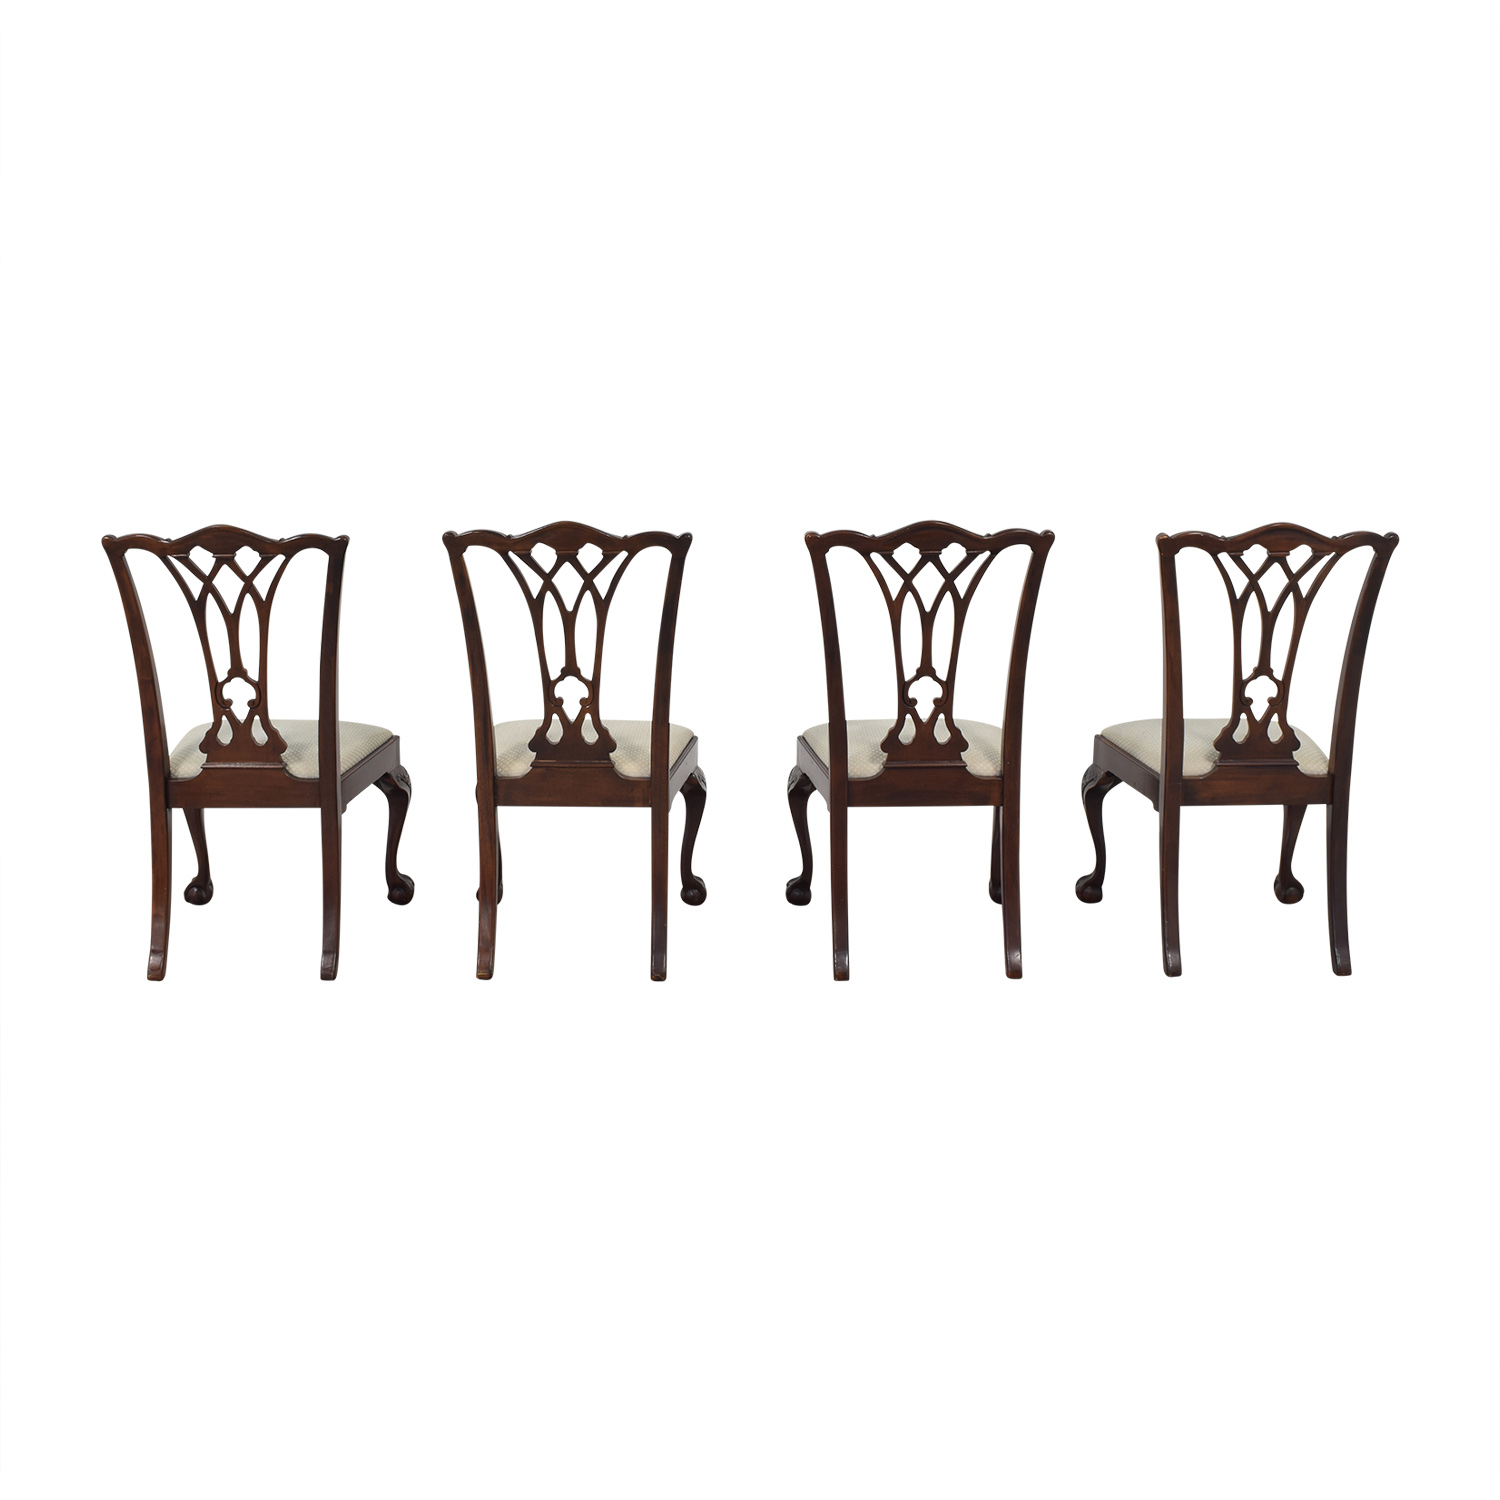 Drexel Heritage Armless Dining Chairs sale